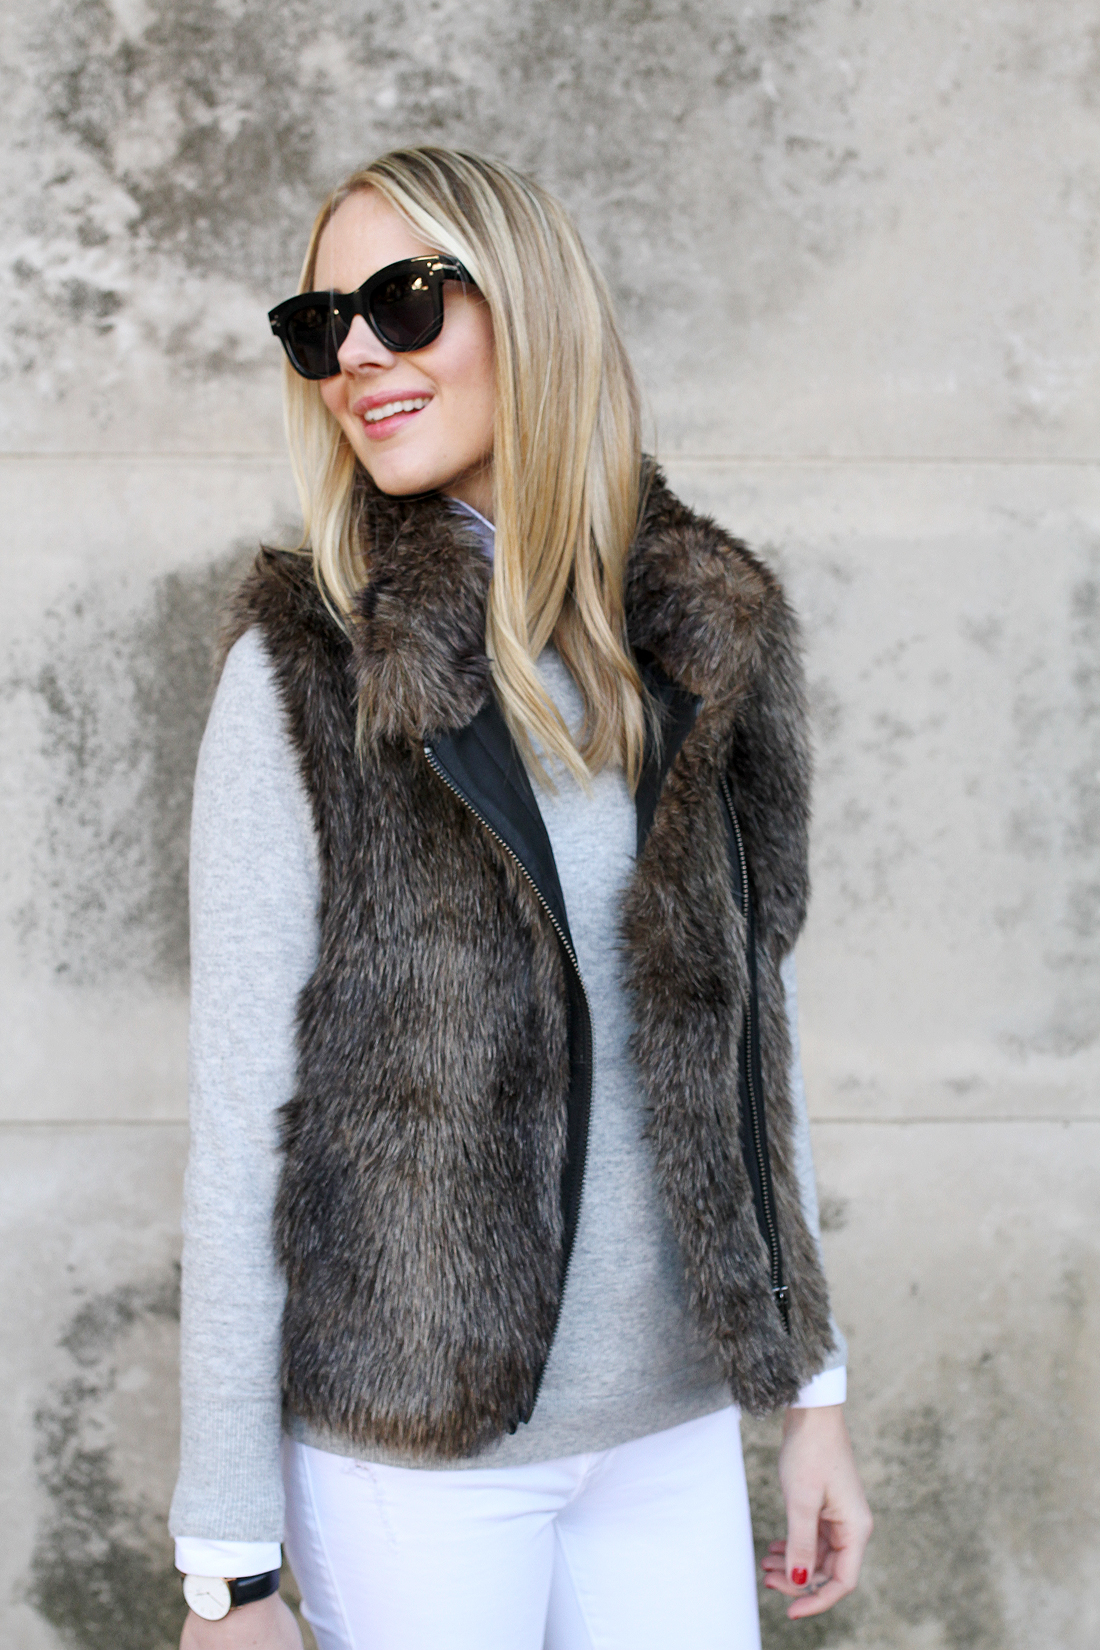 Bluelans Chic Lady Faux Fur Vest Waistcoat Winter Autumn Sleeveless Outwear Casual Coat. Sold by Bluelans. $ $ - $ Holo Fashion Women Ladies Outerwear Sleeveless Casual Faux Fur Vest Warm Coat Outwear. Sold by Best selling. $ $